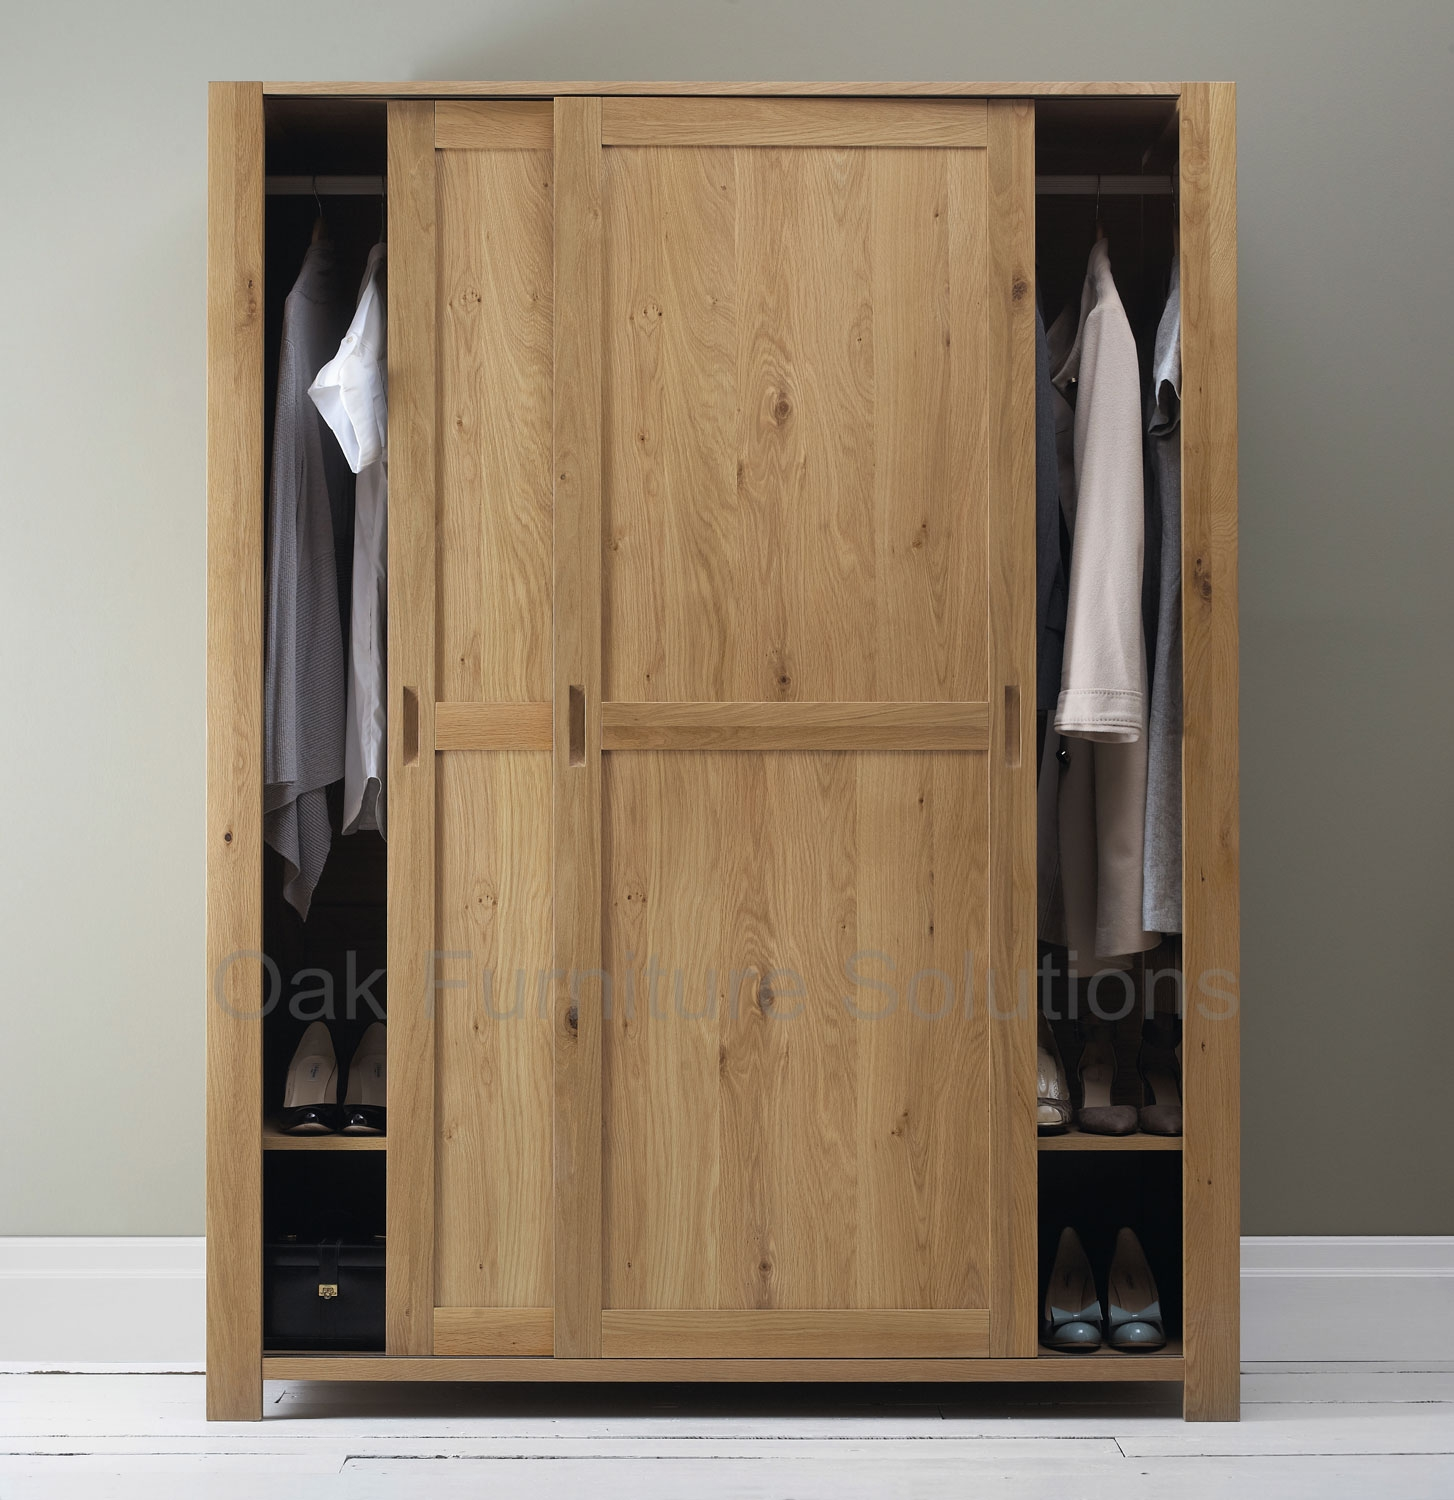 oak wood of sliding door for closet